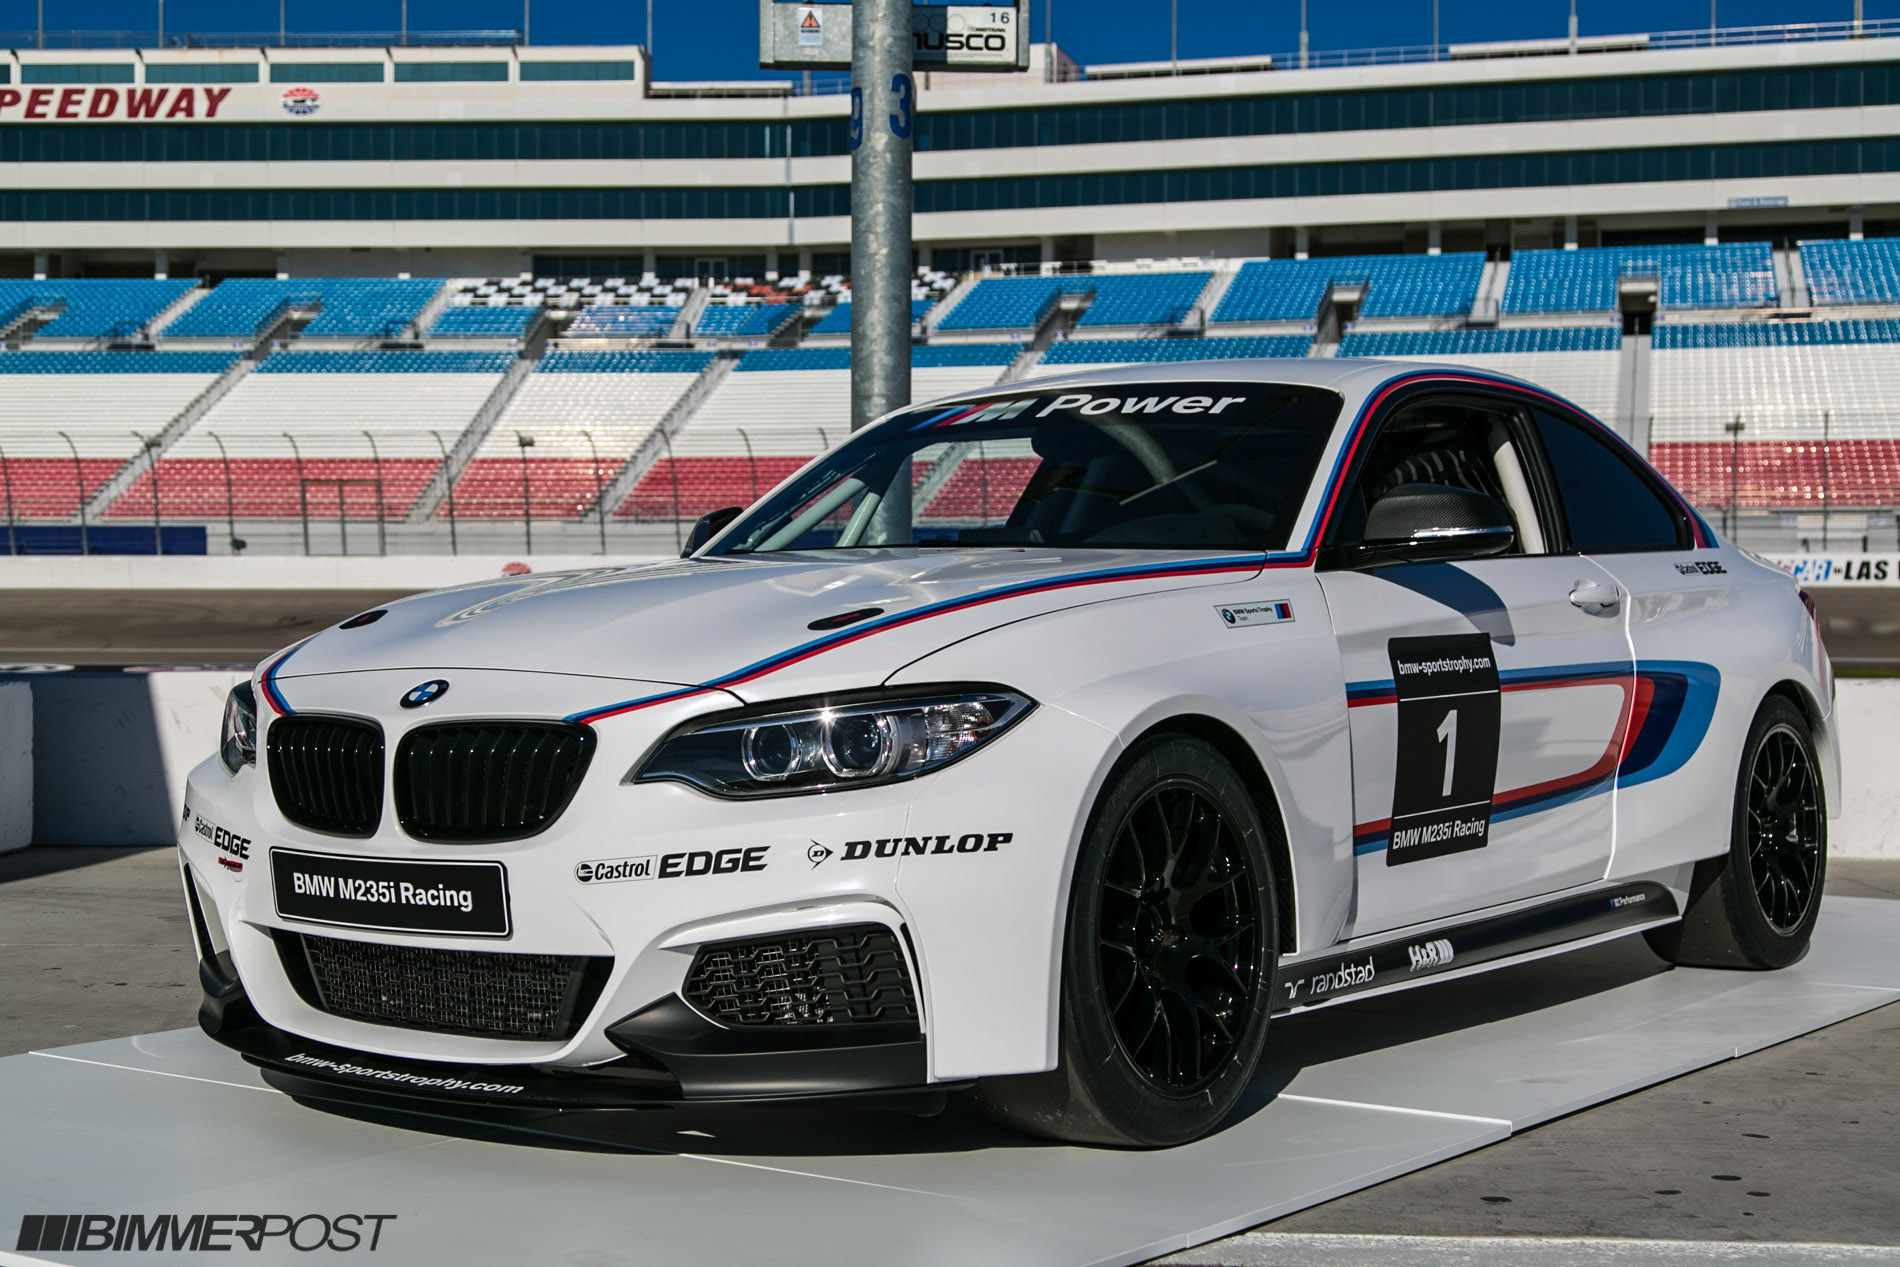 bmw m235i m performance parts and m235i racing car gallery. Black Bedroom Furniture Sets. Home Design Ideas